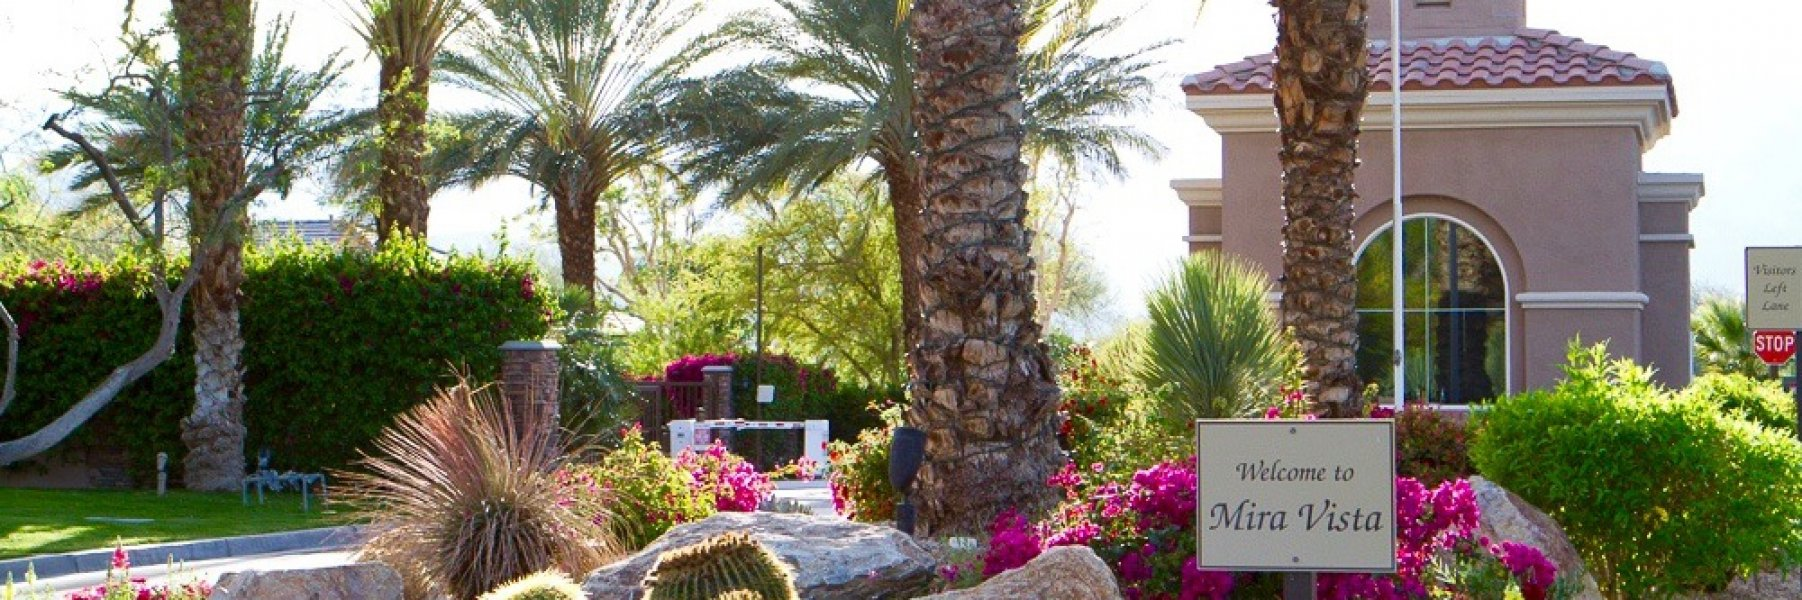 Mira Vista is a community of homes in Rancho Mirage California